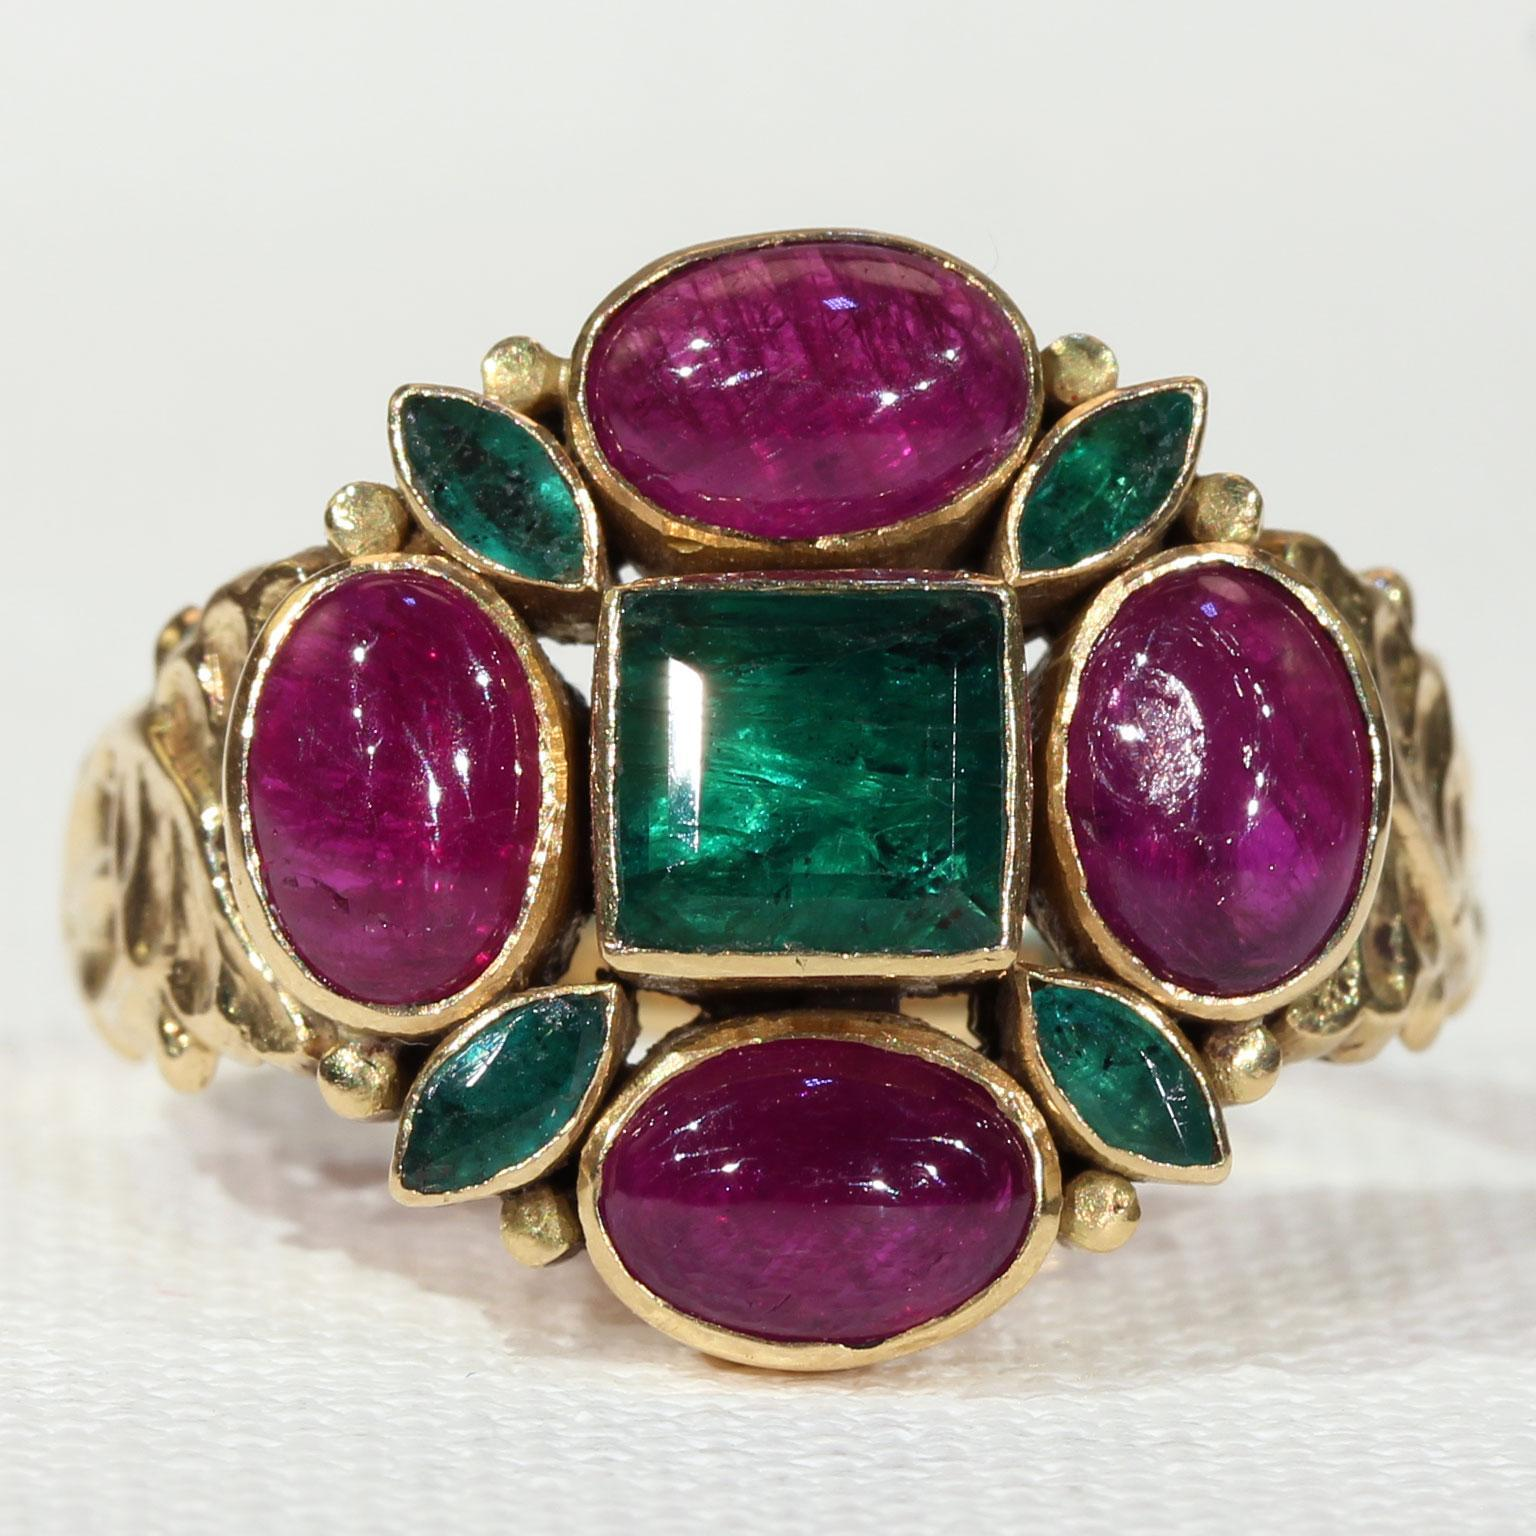 fabulous vintage emerald and ruby ring in 18k gold